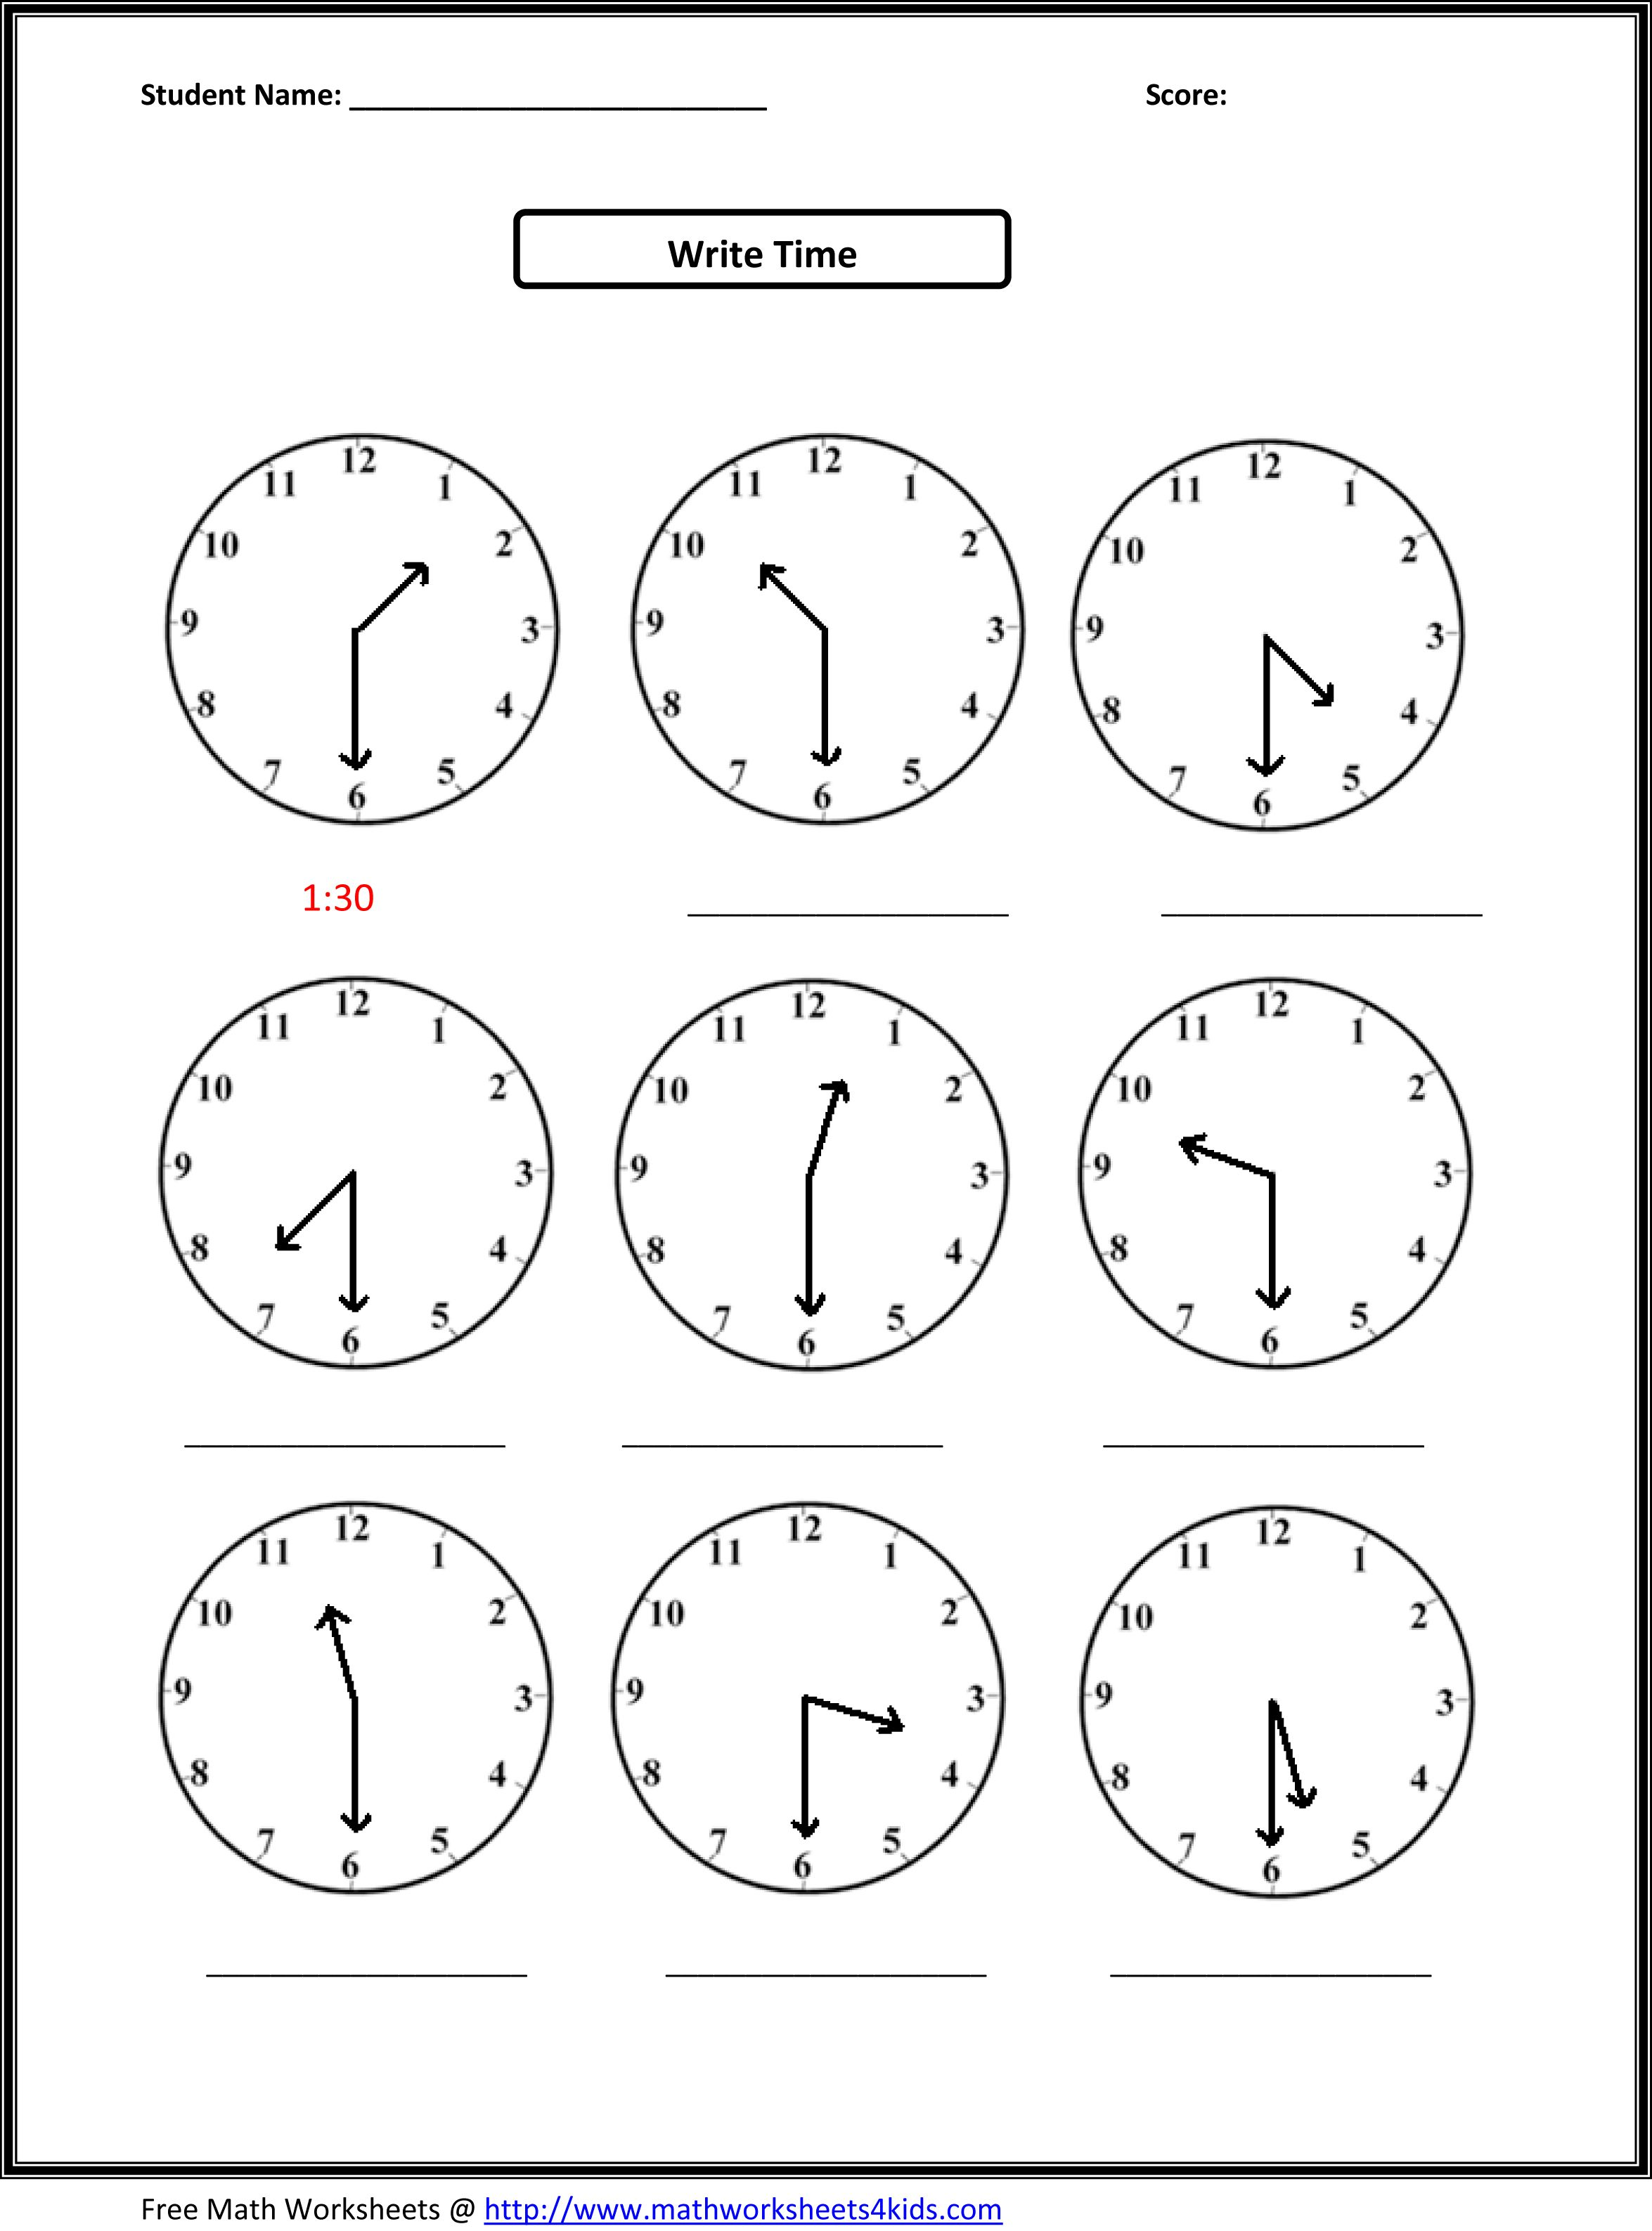 Proatmealus  Winsome Worksheet On Time For Grade   Reocurent With Engaging Free Printable Telling Time Worksheets Nd Grade  Reocurent With Nice Eighth Grade Reading Comprehension Worksheets Also Budgeting Worksheets Printable In Addition Number  Worksheets For Preschool And Free Printable Kindergarten Worksheets Math As Well As Lay Lie Worksheet Additionally Air Pressure Worksheets From Reocurentcom With Proatmealus  Engaging Worksheet On Time For Grade   Reocurent With Nice Free Printable Telling Time Worksheets Nd Grade  Reocurent And Winsome Eighth Grade Reading Comprehension Worksheets Also Budgeting Worksheets Printable In Addition Number  Worksheets For Preschool From Reocurentcom